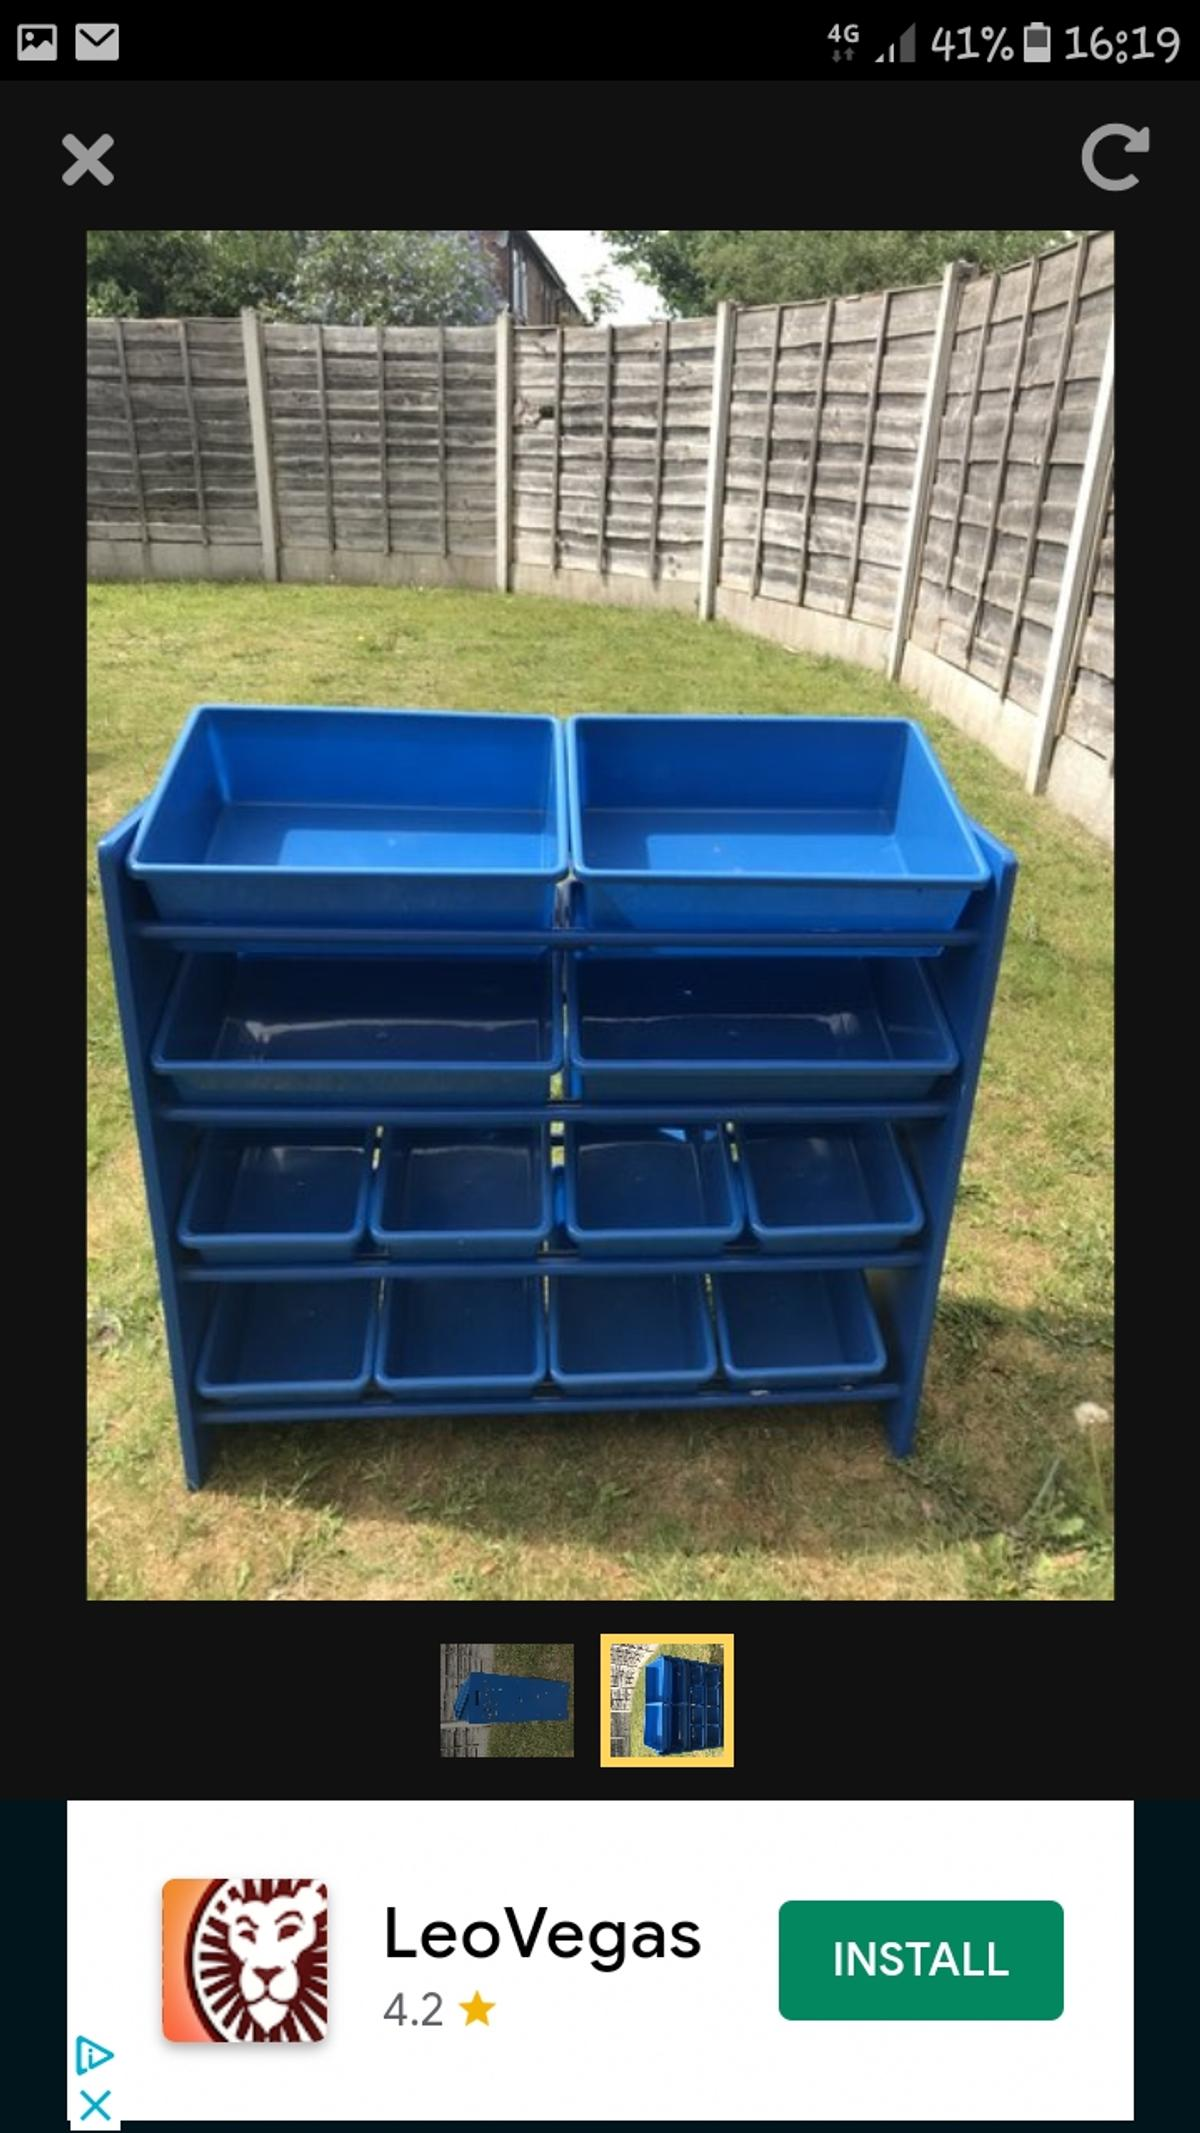 12 plastic drawer storage unit. used but in good condition can deliver if local.